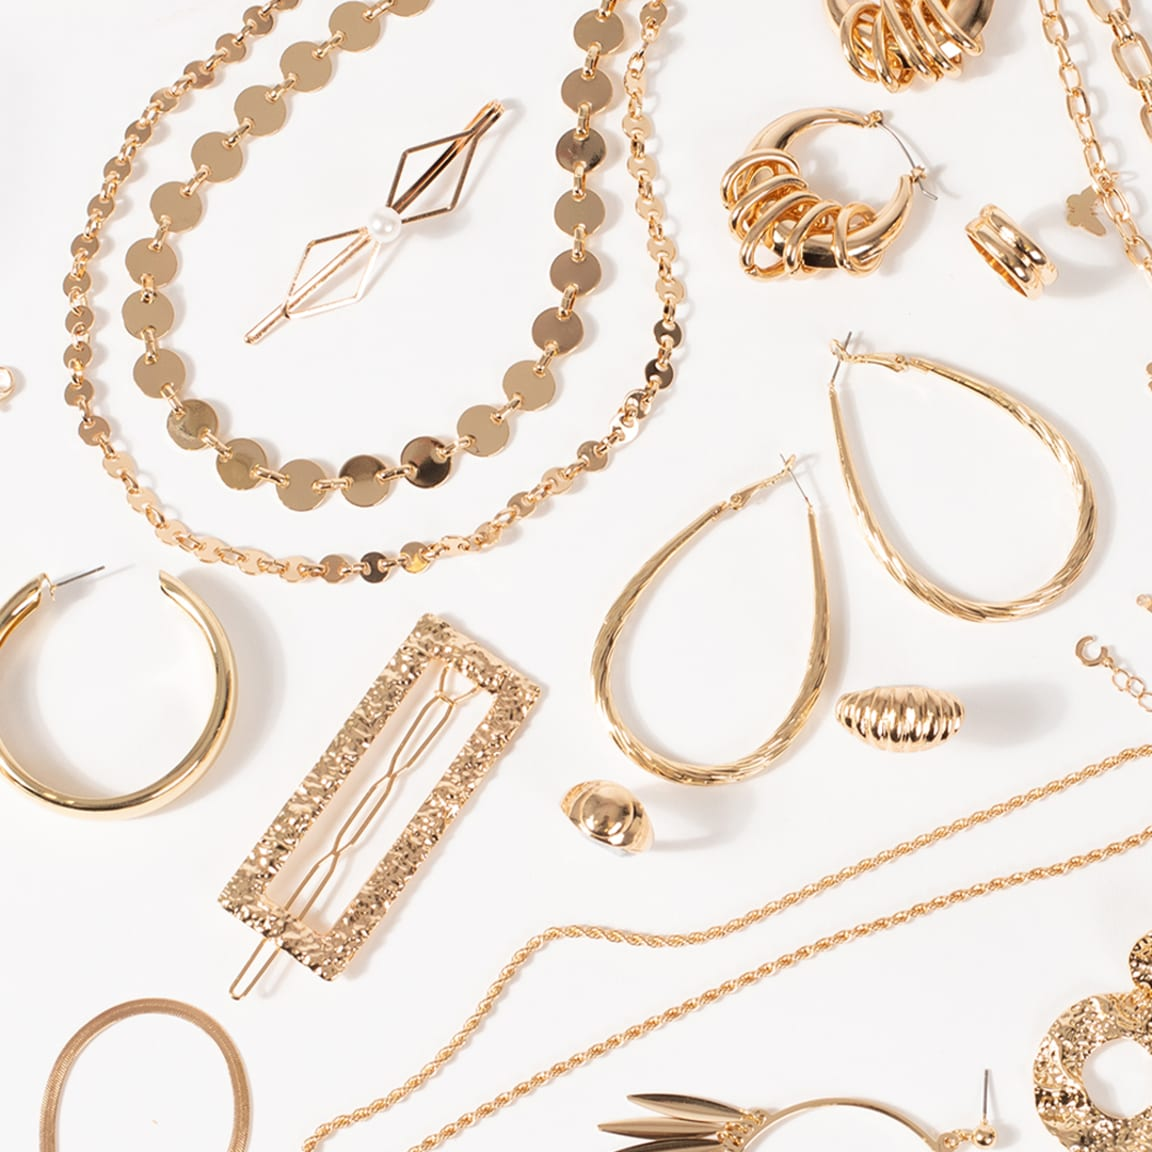 Colette by Colette Hayman: 3 for $10 jewellery